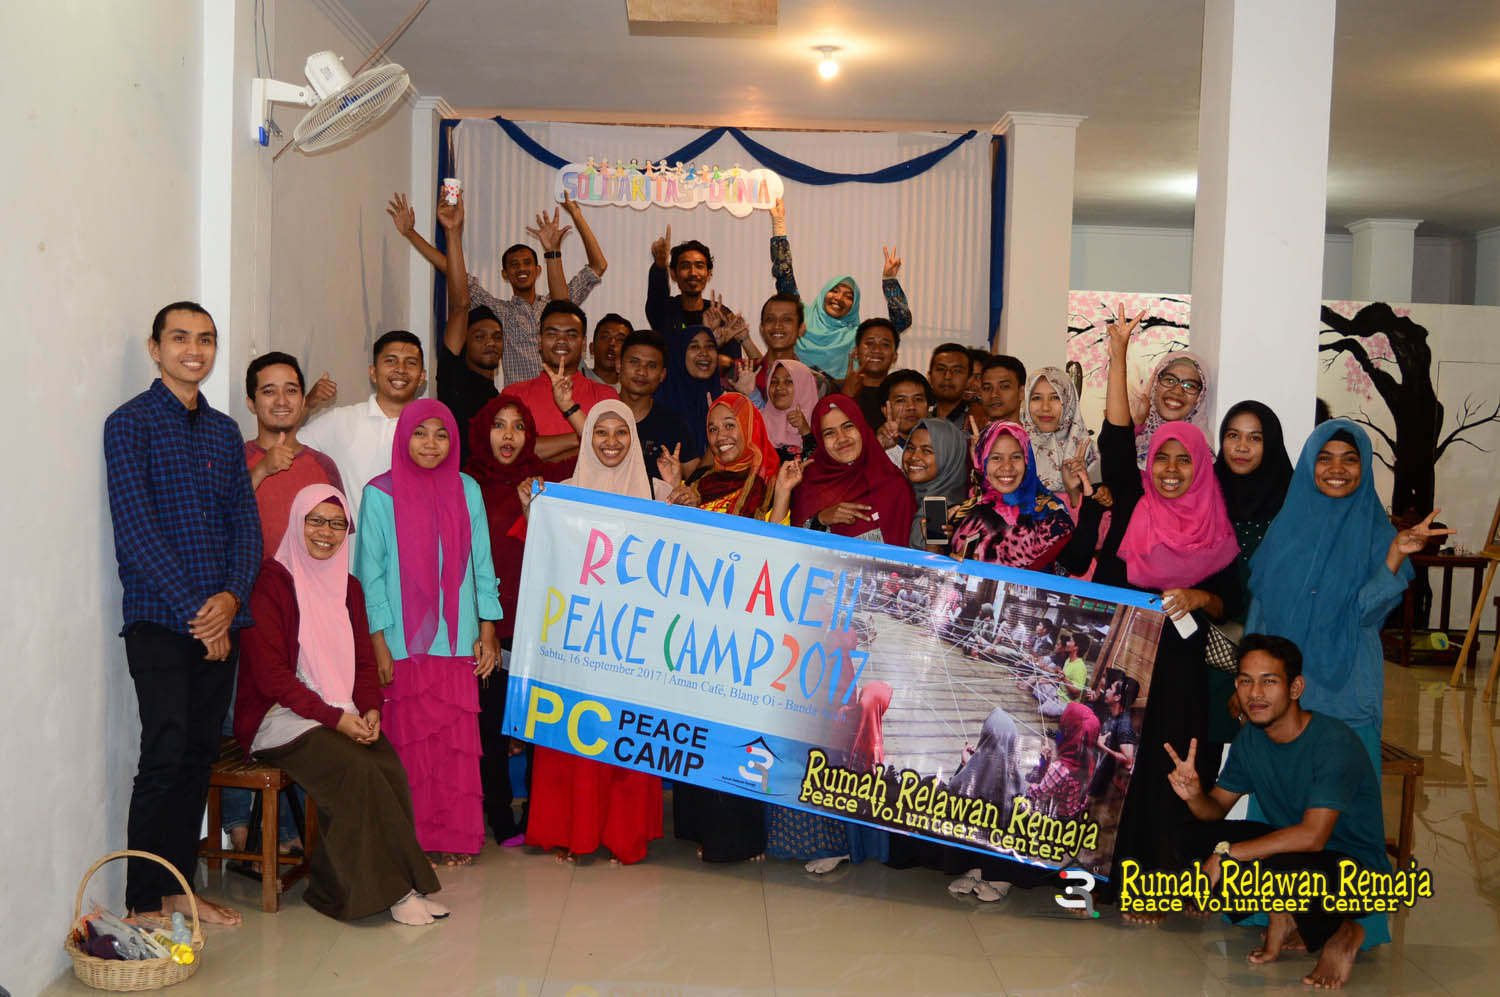 Reuni Aceh Peace camp